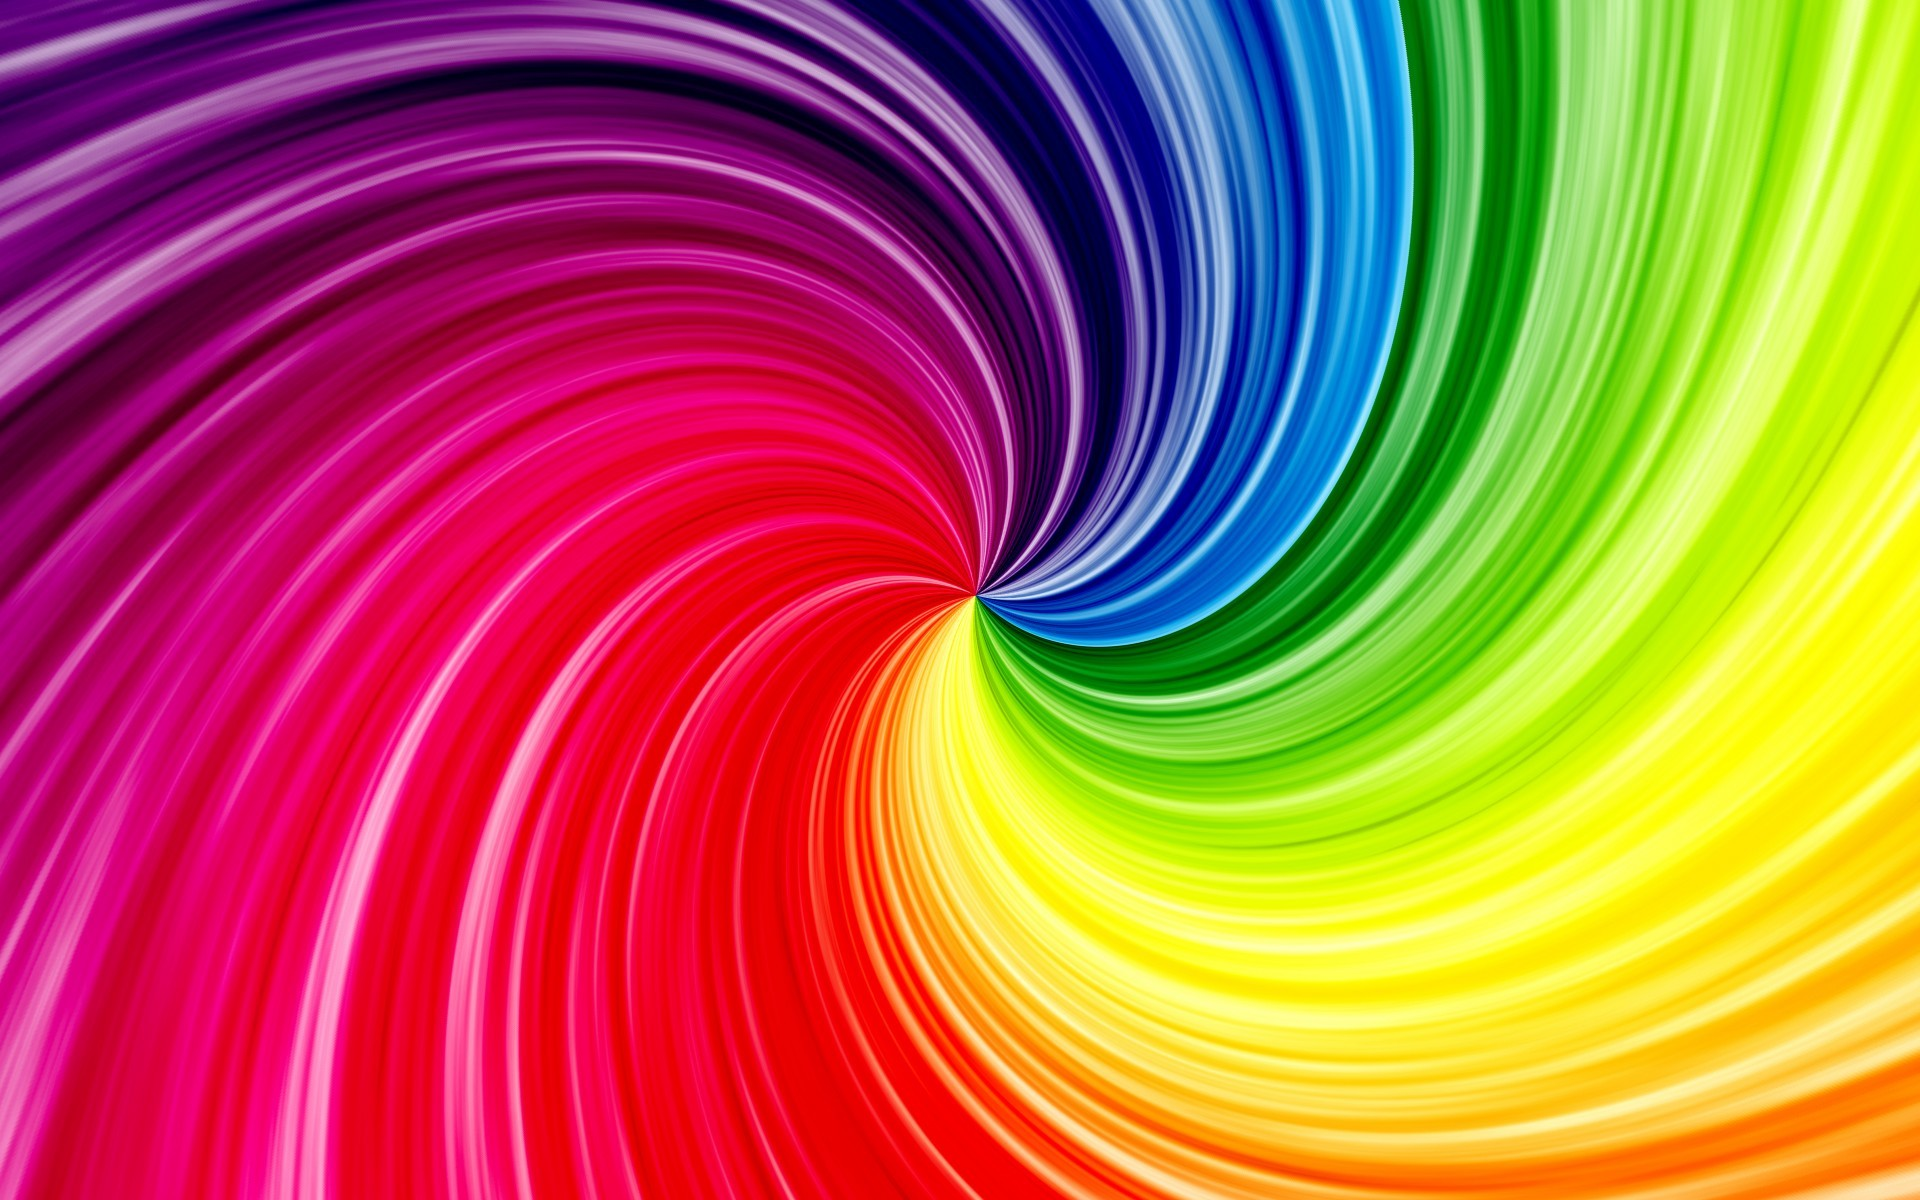 Bright colorful waves f wallpaper | | 100972 | WallpaperUP